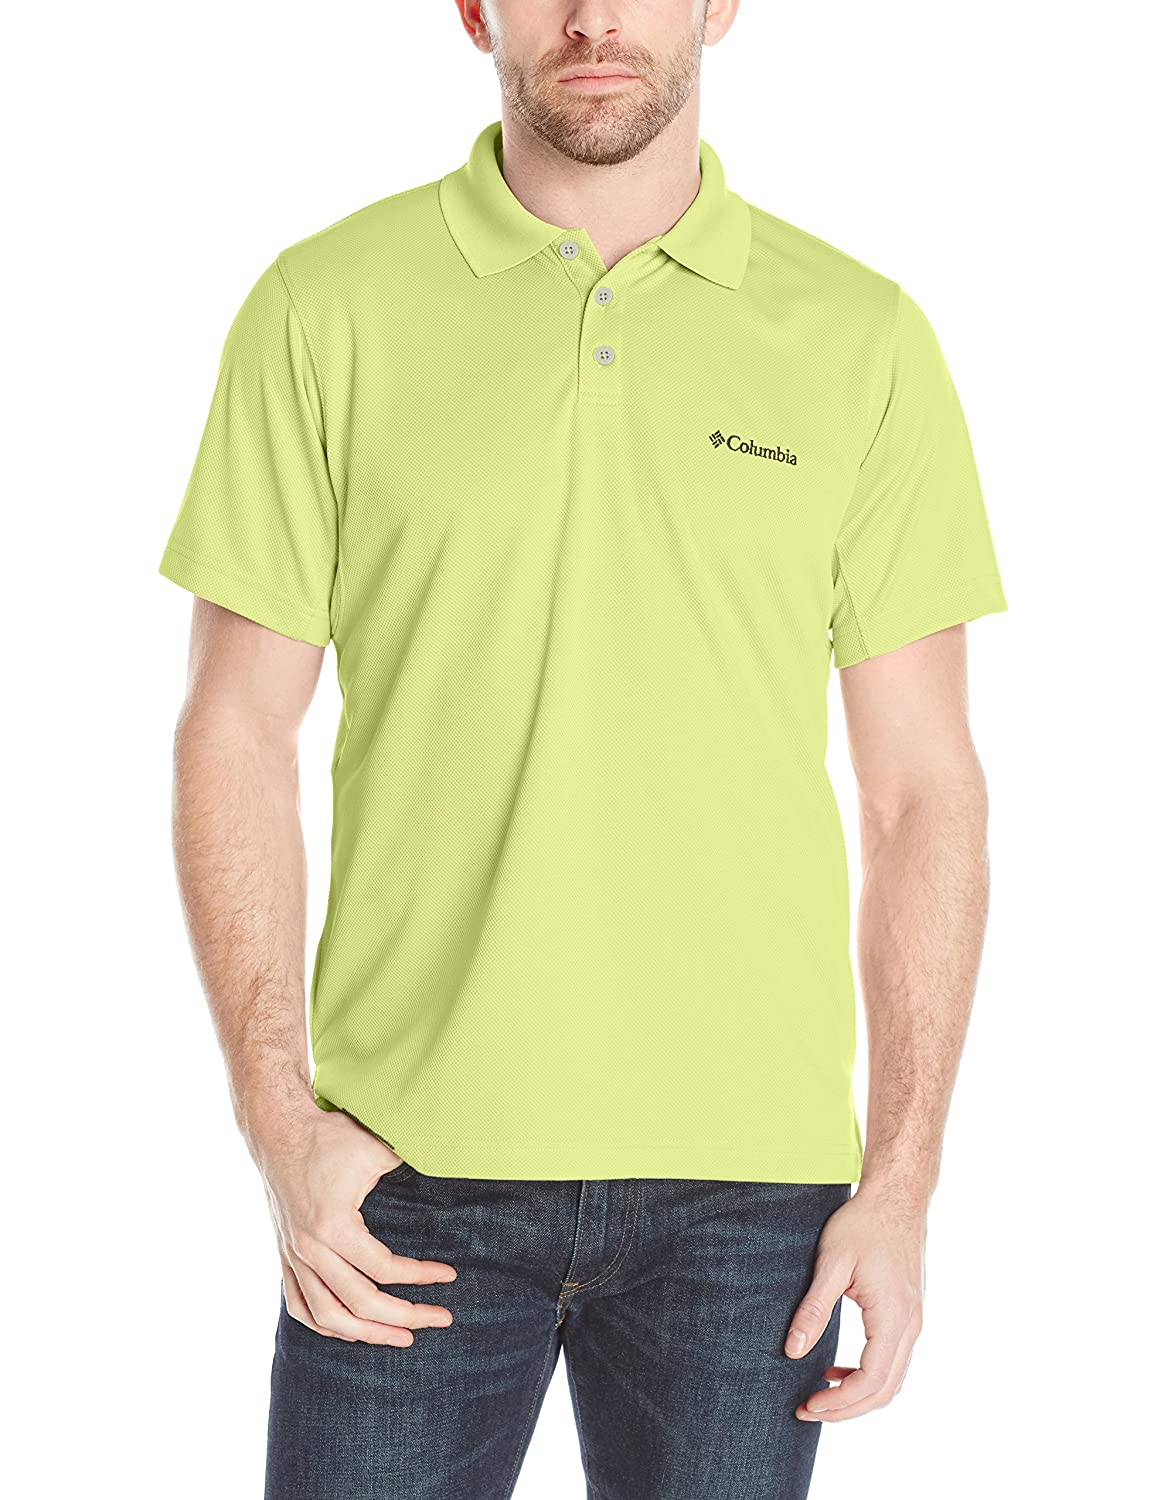 a01afb636 Columbia Men's New Utilizer Polo Shirt at Amazon Men's Clothing store: